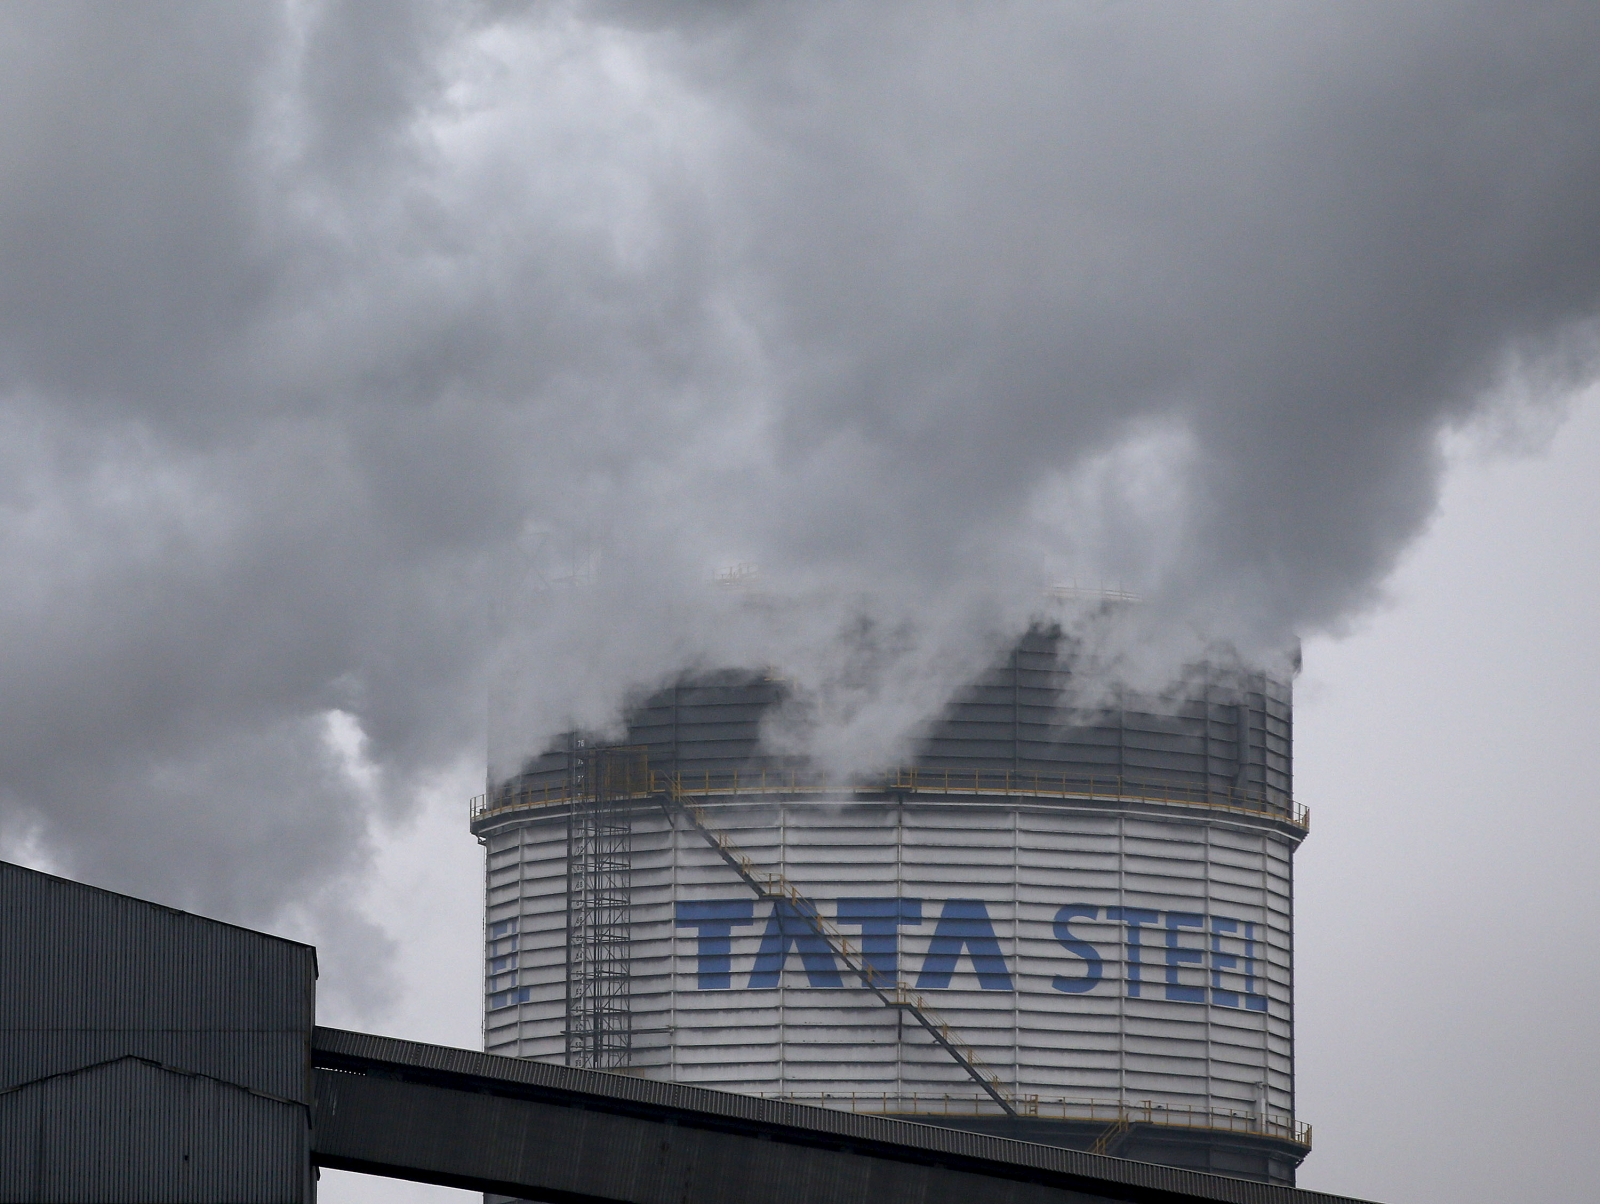 Brexit: Tata Steel's efforts to maintain operations in the UK could now be damaged